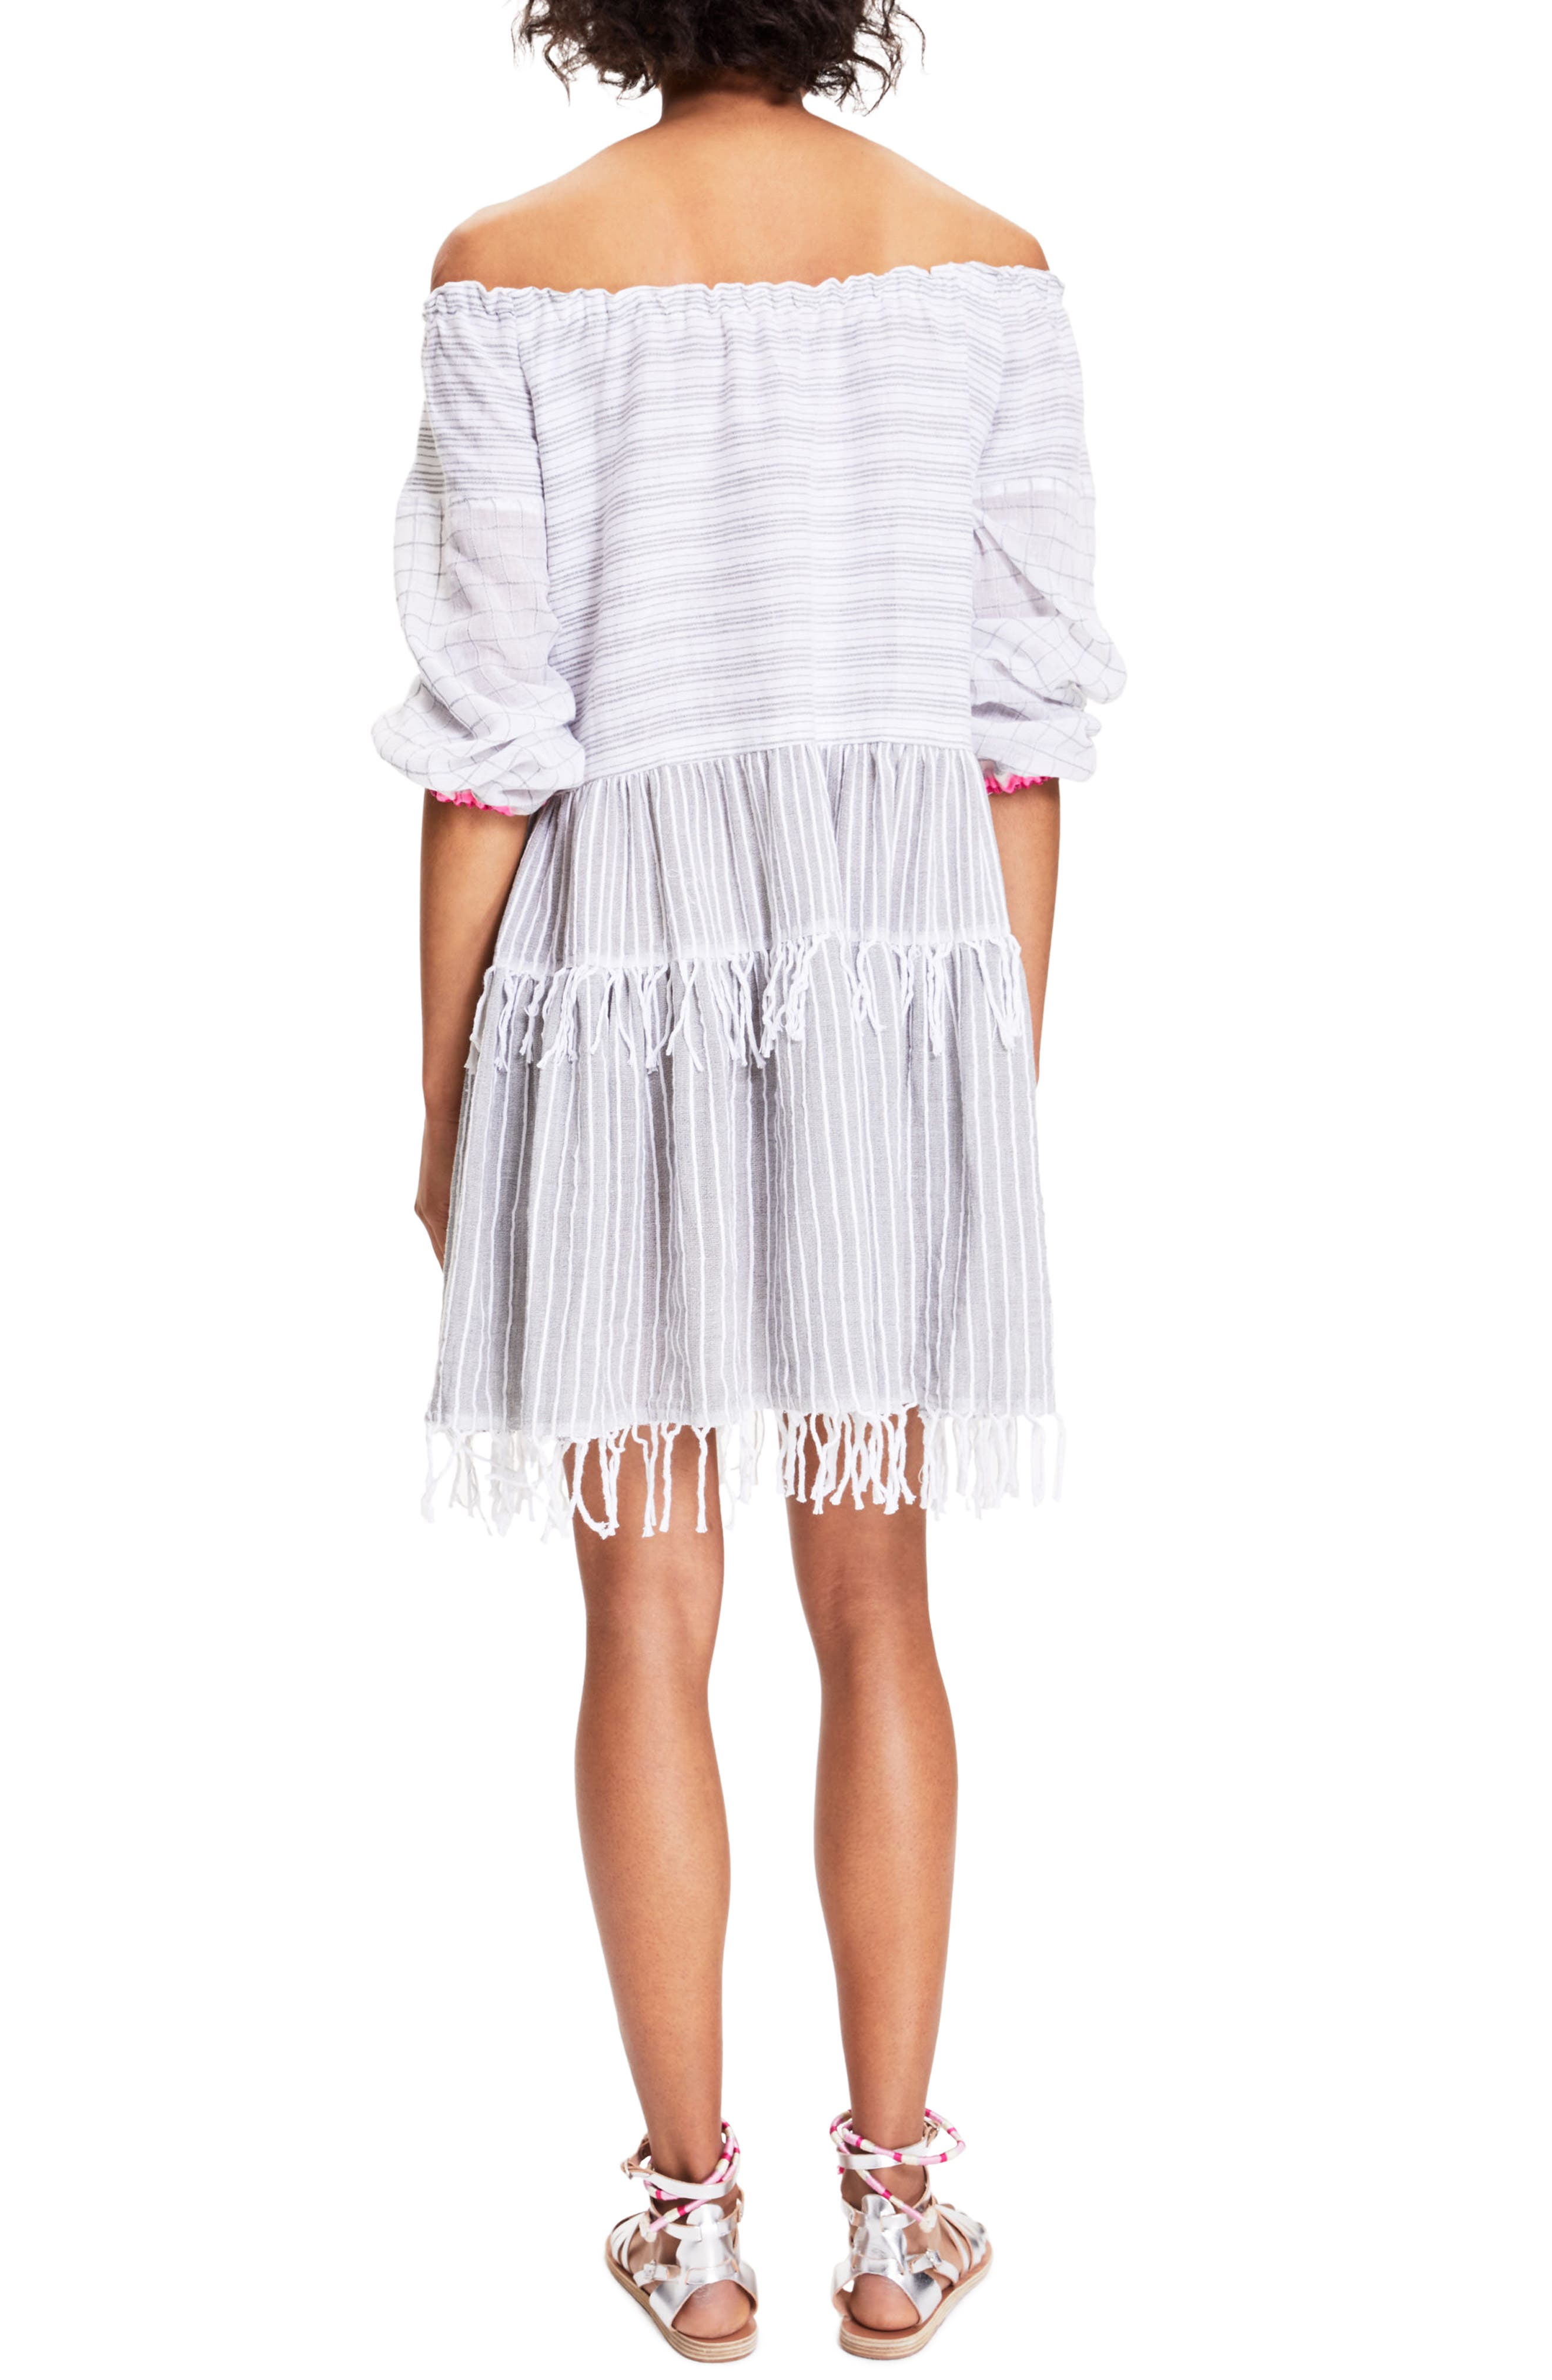 Anana Off the Shoulder Cover-Up Dress,                             Alternate thumbnail 2, color,                             Pebble